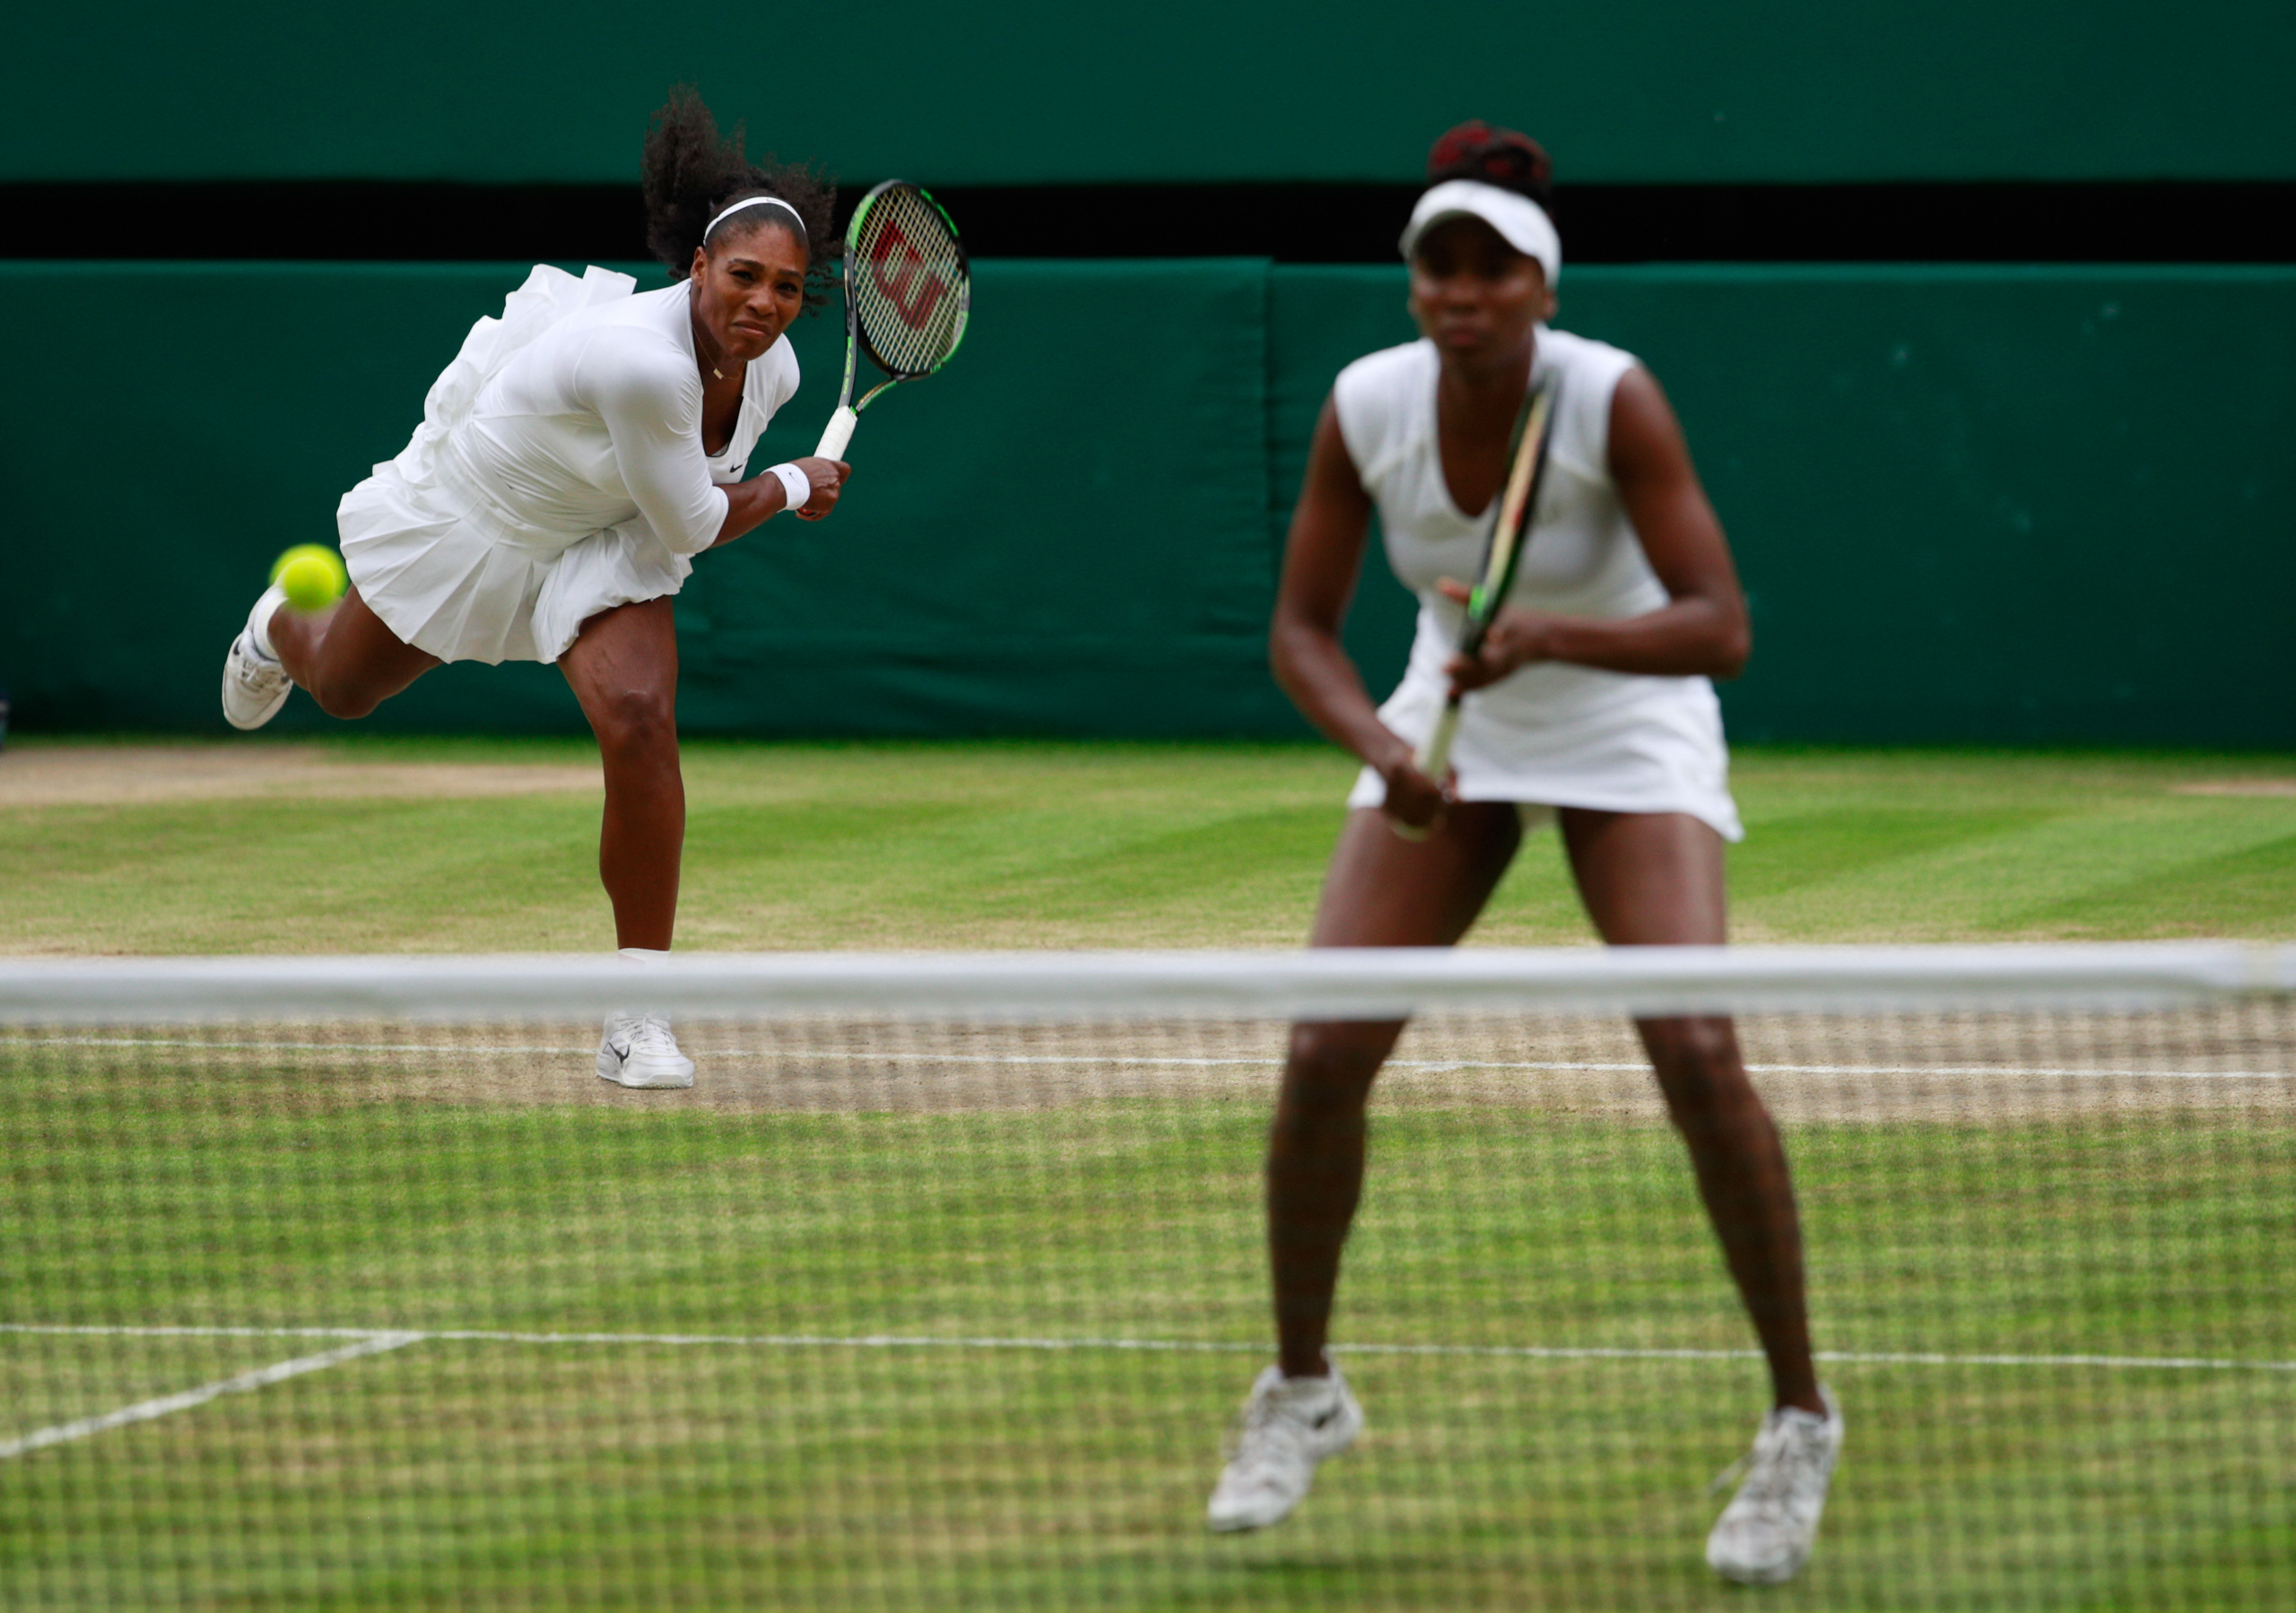 """<strong>Serena Williams and Venus Williams, Tennis, USA</strong>For many top pro athletes, an Olympic medal is a nice accessory to have hanging in the game room. The Grand Slams, majors and NBA titles are what pay the bills—a point made clear this summer when LeBron James, Stephen Curry, Rory McIlroy and many other big names bailed on Rio. They cited fatigue, injuries and the risk of catching Zika. But really, these athletes are staying home because they can afford to.                                    The Williams sisters could have joined these stars and skipped Rio. Instead, Venus and Serena are bucking this Olympic indifference. They've embraced the Games with the zeal of athletes for whom the event is their Super Bowl. They're both fourtime gold medalists, each with one singles title and three doubles golds won together.                                   Venus recently said she holds the Olympics in higher regard than the Slams. When some pros expressed frustration that the Olympics don't count toward pro tour rankings, she scoffed. """"Who needs ranking points if you're playing for a gold medal?"""" Venus said. """"Gotta get your life in perspective.""""                                   More than anything, the bond between Venus and Serena is what keeps them coming back to the Olympics. What's better than trying to win a gold medal while playing with your sibling? And as Serena's career has surpassed her older sister's—she tied Steffi Graf's Openera record of 22 Grand Slam tournament wins at Wimbledon and will attempt to break it at the U.S. Open in September—Venus has remained her biggest fan. """"I think some siblings would feel different,"""" Serena says. """"But if I win, she feels like she won. There's literally no difference.""""                                   In Rio, they can own the podium together. Serena is favored to defend the 2012 singles gold she won in London, while the sisters are a good bet to edge Switzerland's Martina Hingis and Belinda Bencic for their fourth"""